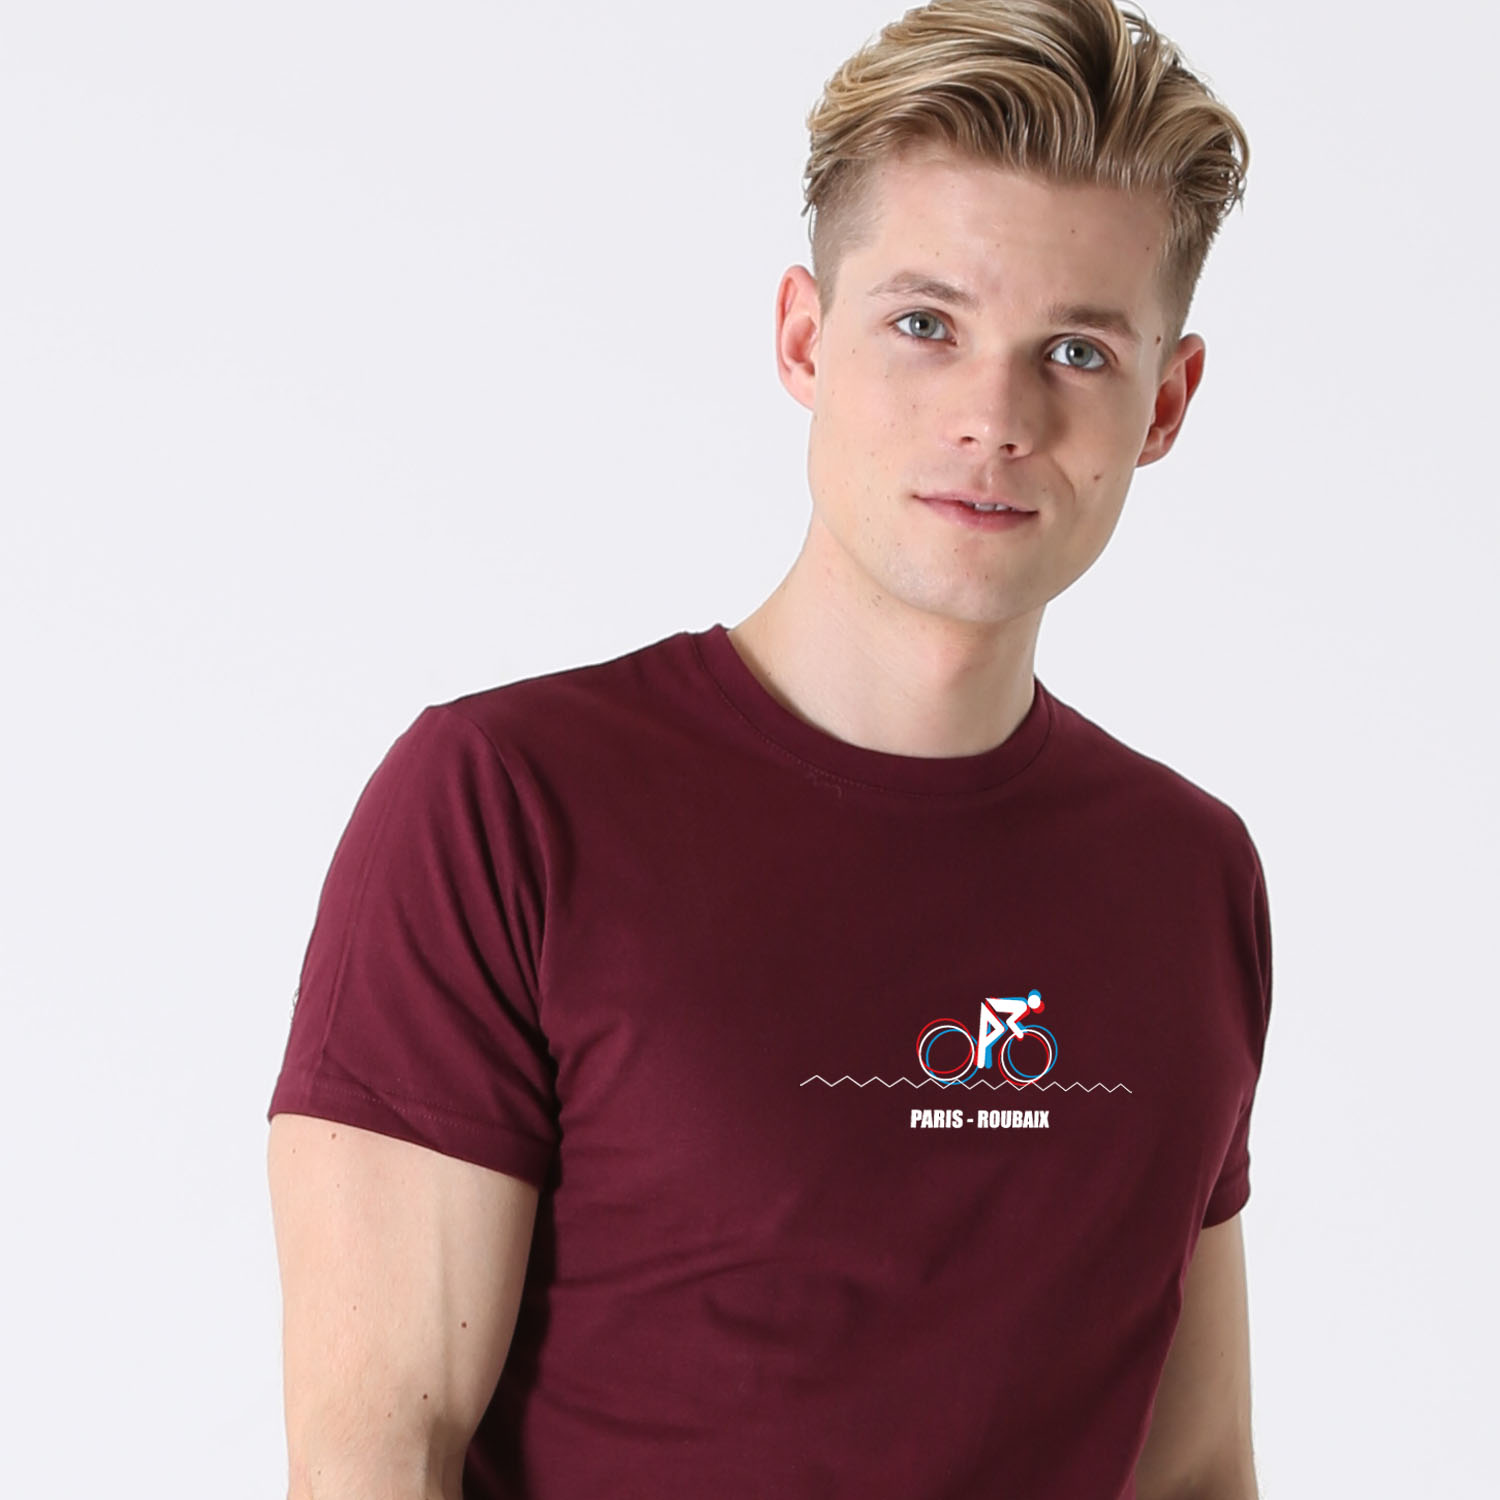 T-lab-Paris-Roubaix-Mens-t-shirt-burgundy